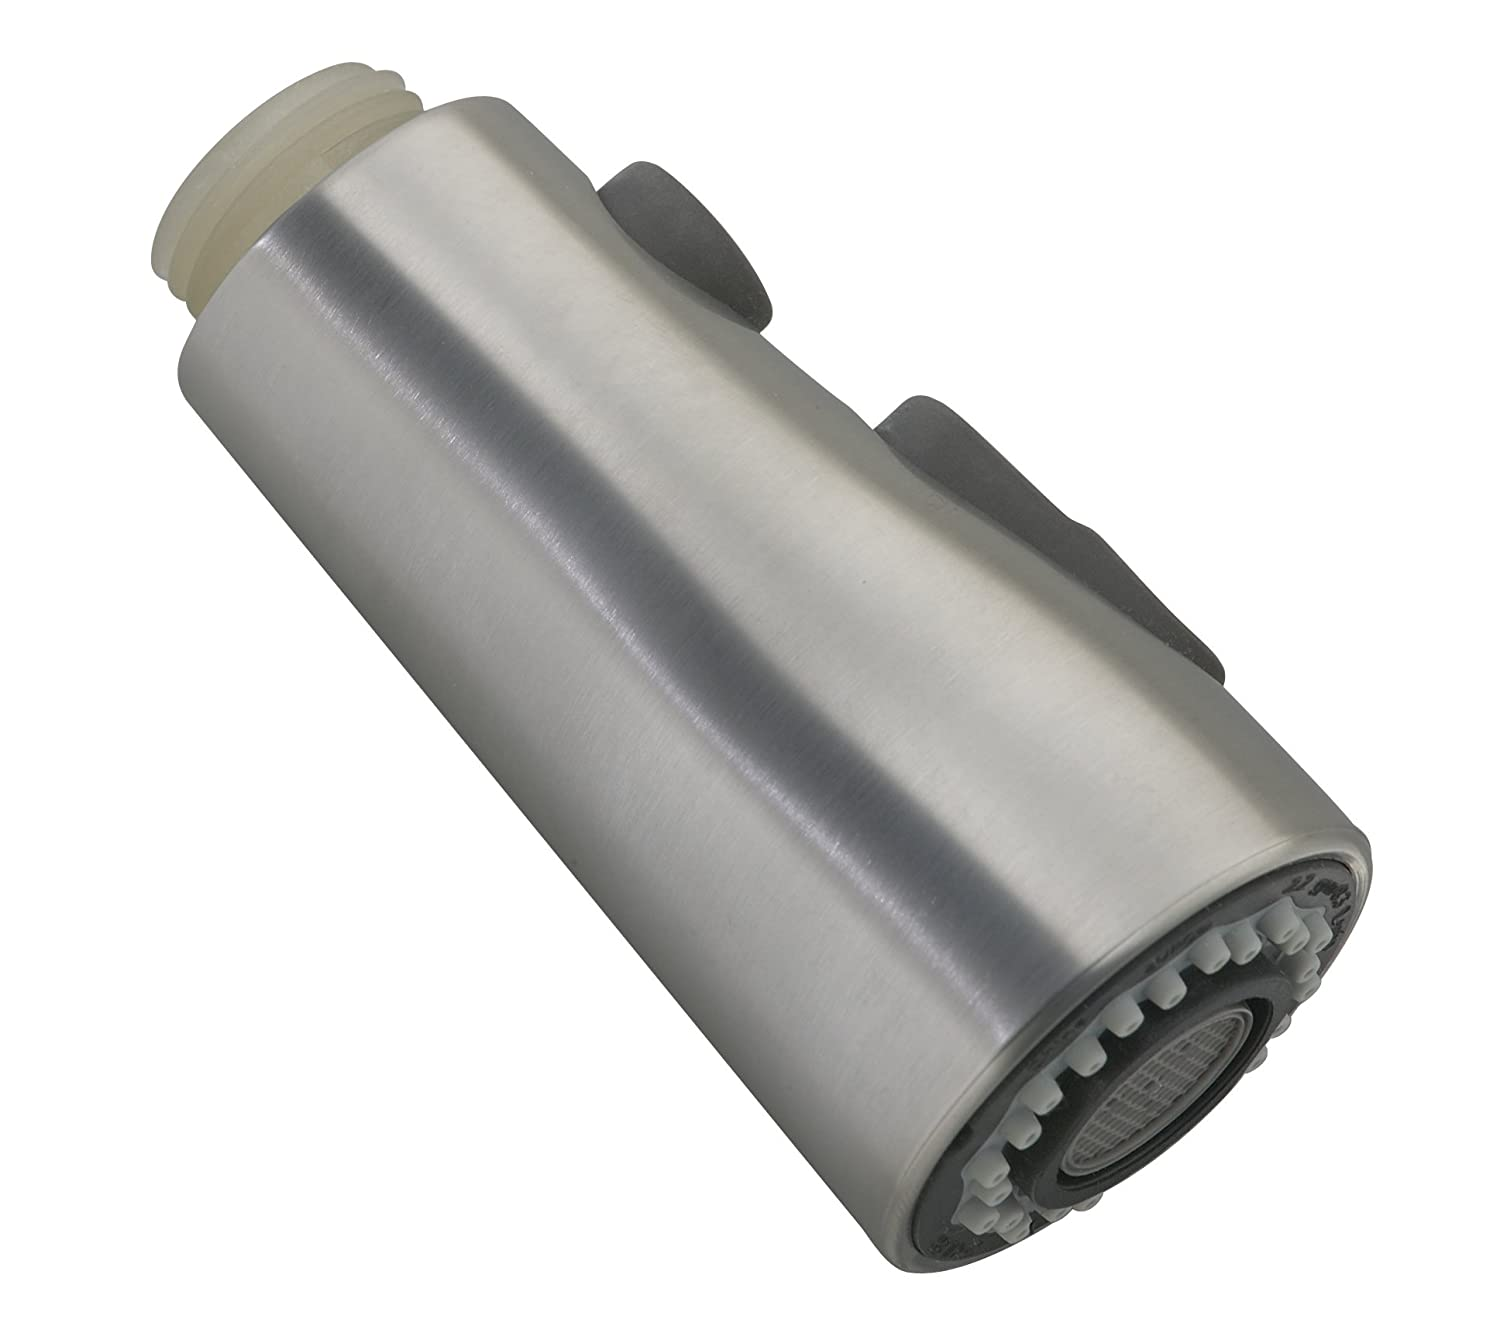 Kohler GP1043211-VS Part PULLDOWN SPRAYHEAD small